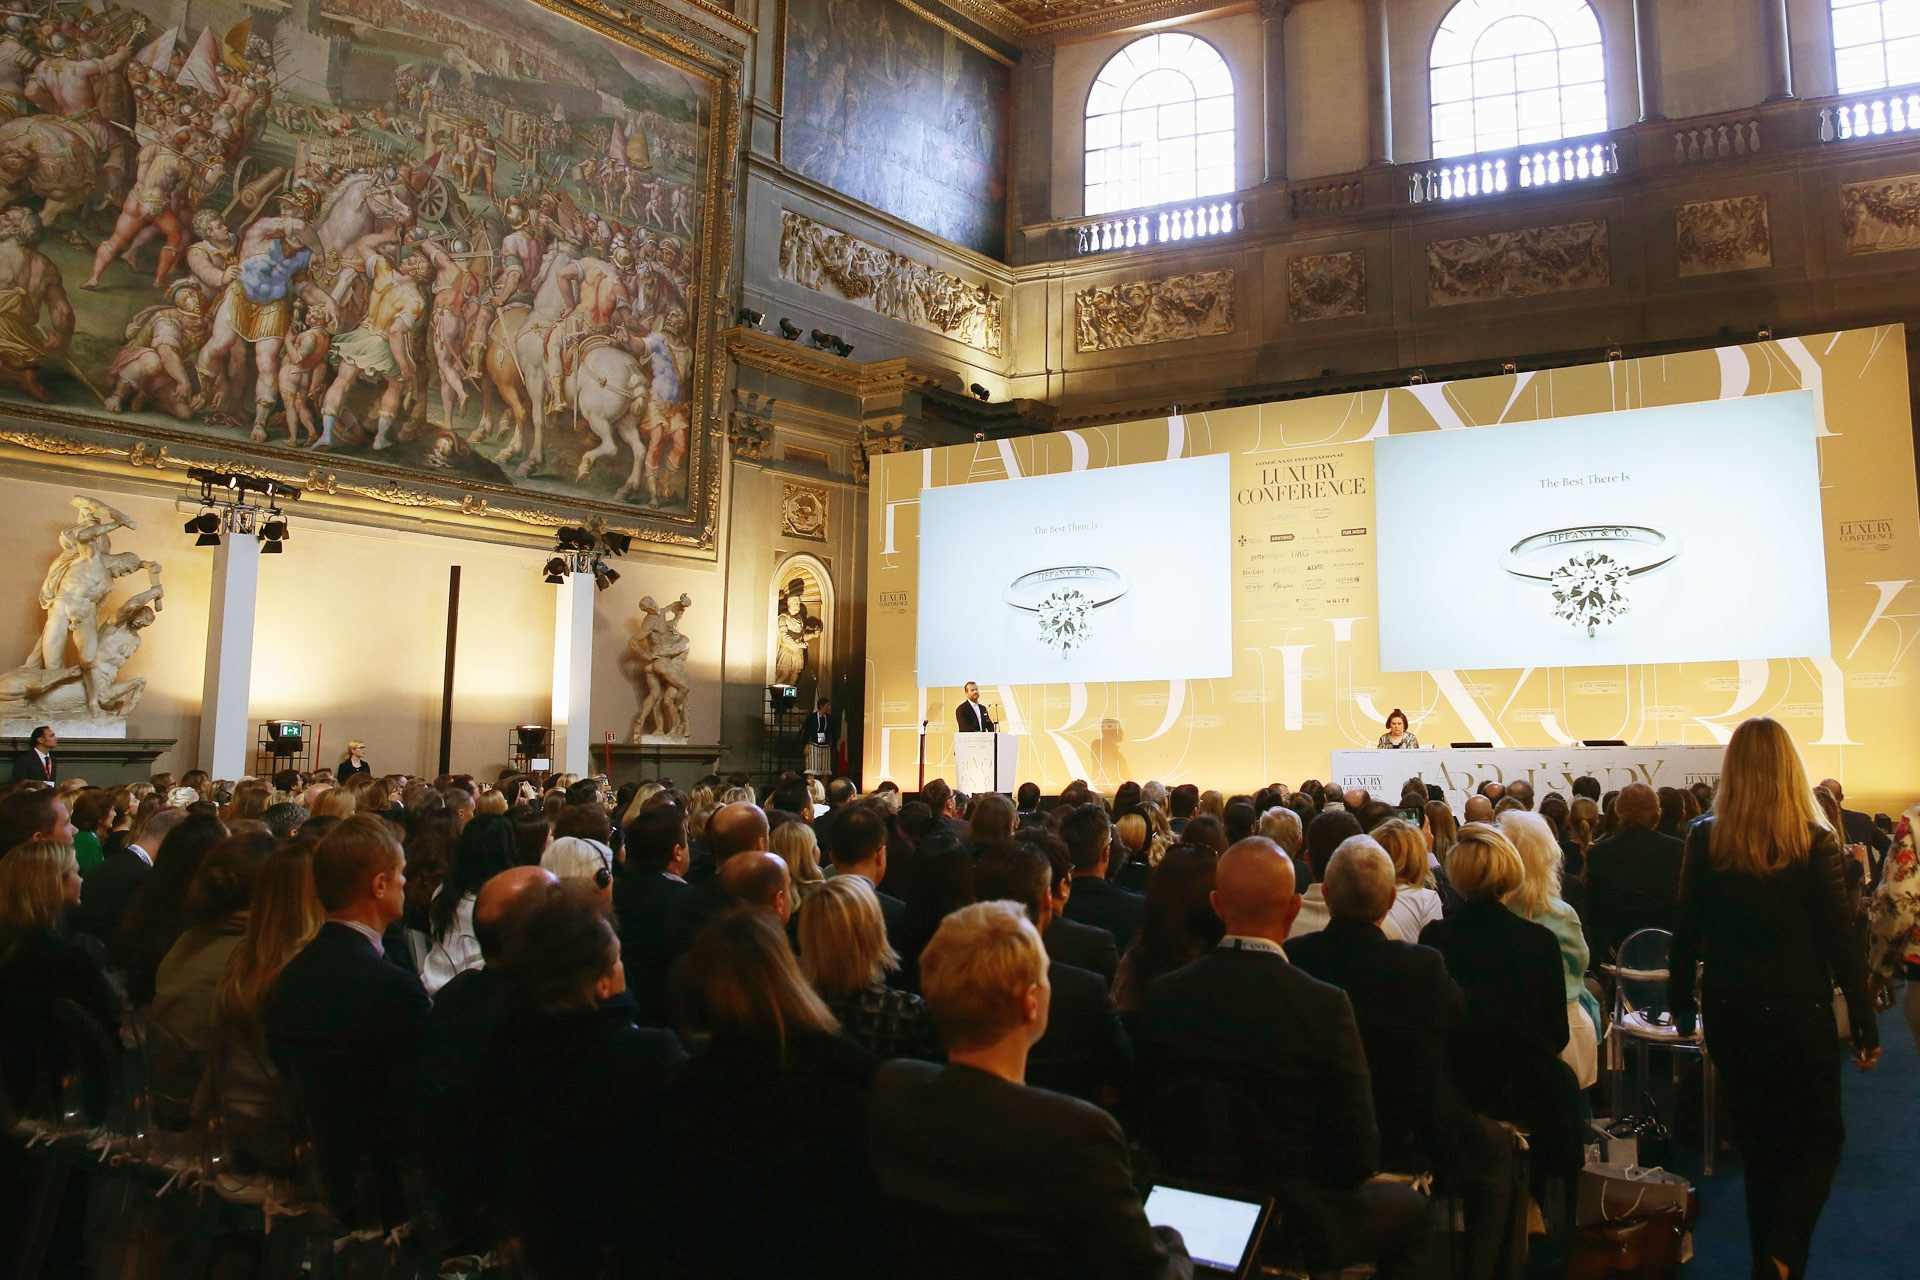 The first Condé Nast International Luxury Conference was held this year in Florence, Italy.